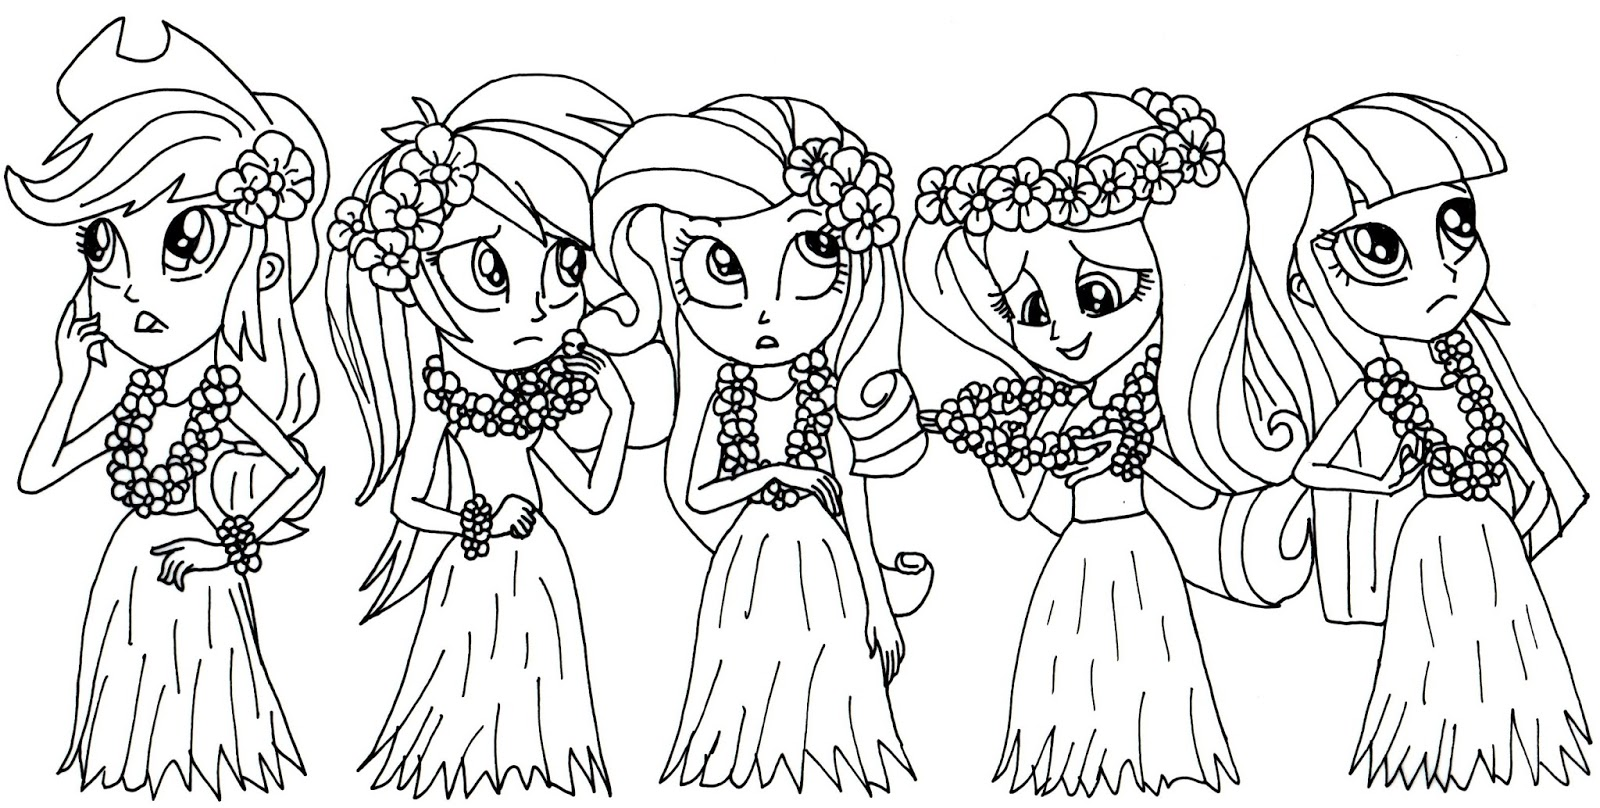 Free Printable My Little Pony Coloring Pages My Little Pony Coloring Page Equestria Girls In Grass Skirts